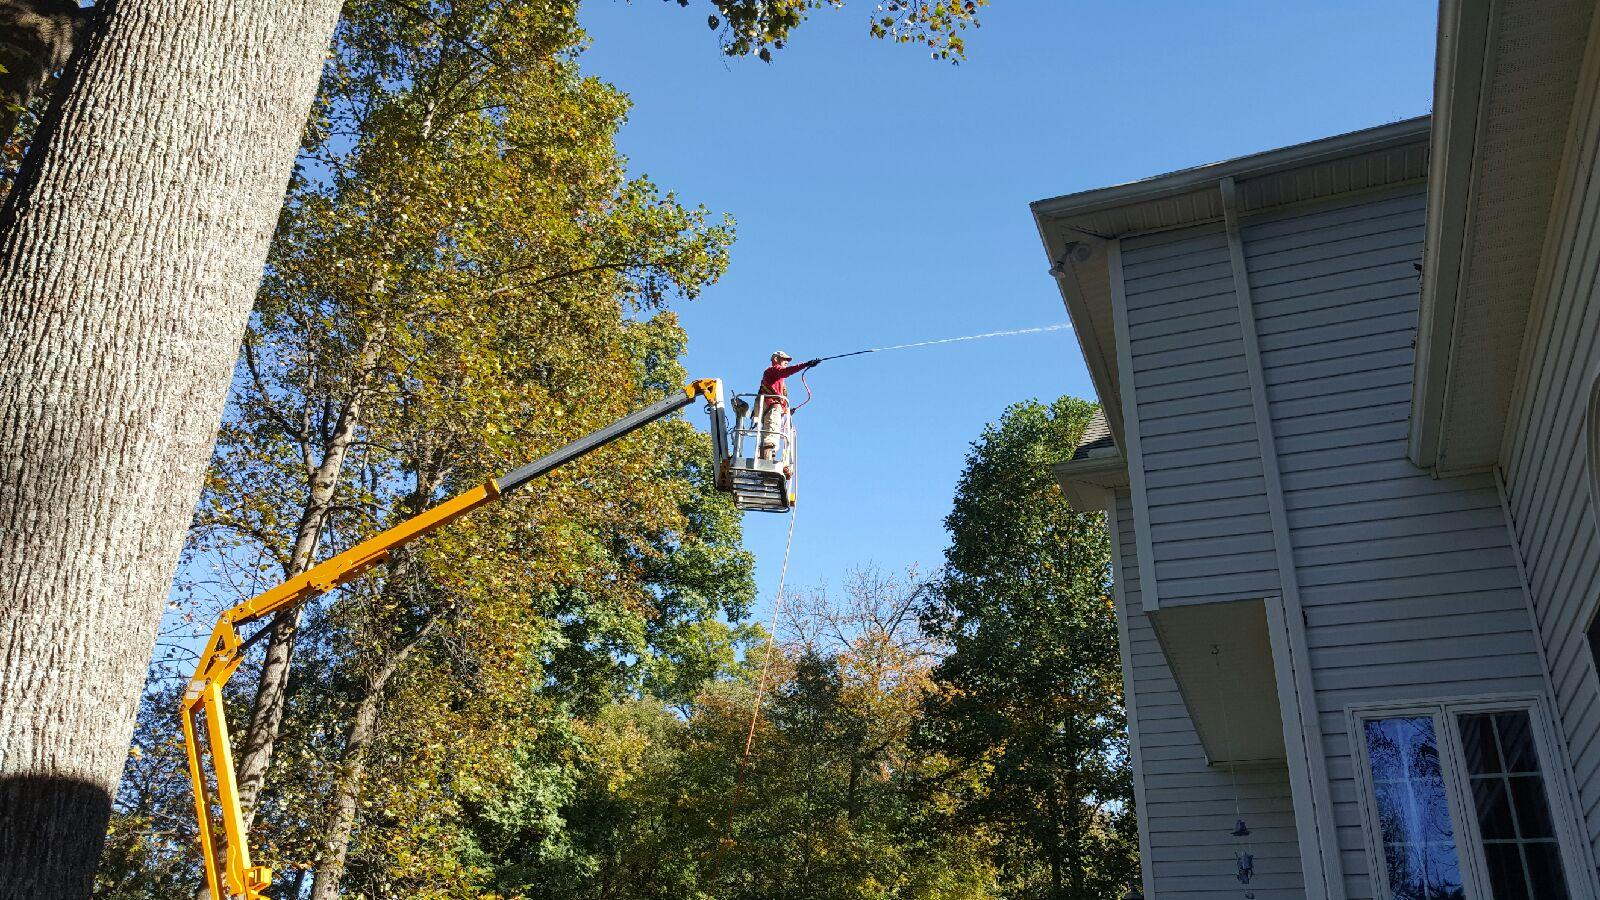 Boom Lift | Power Washing Contractor in Hagerstown MD